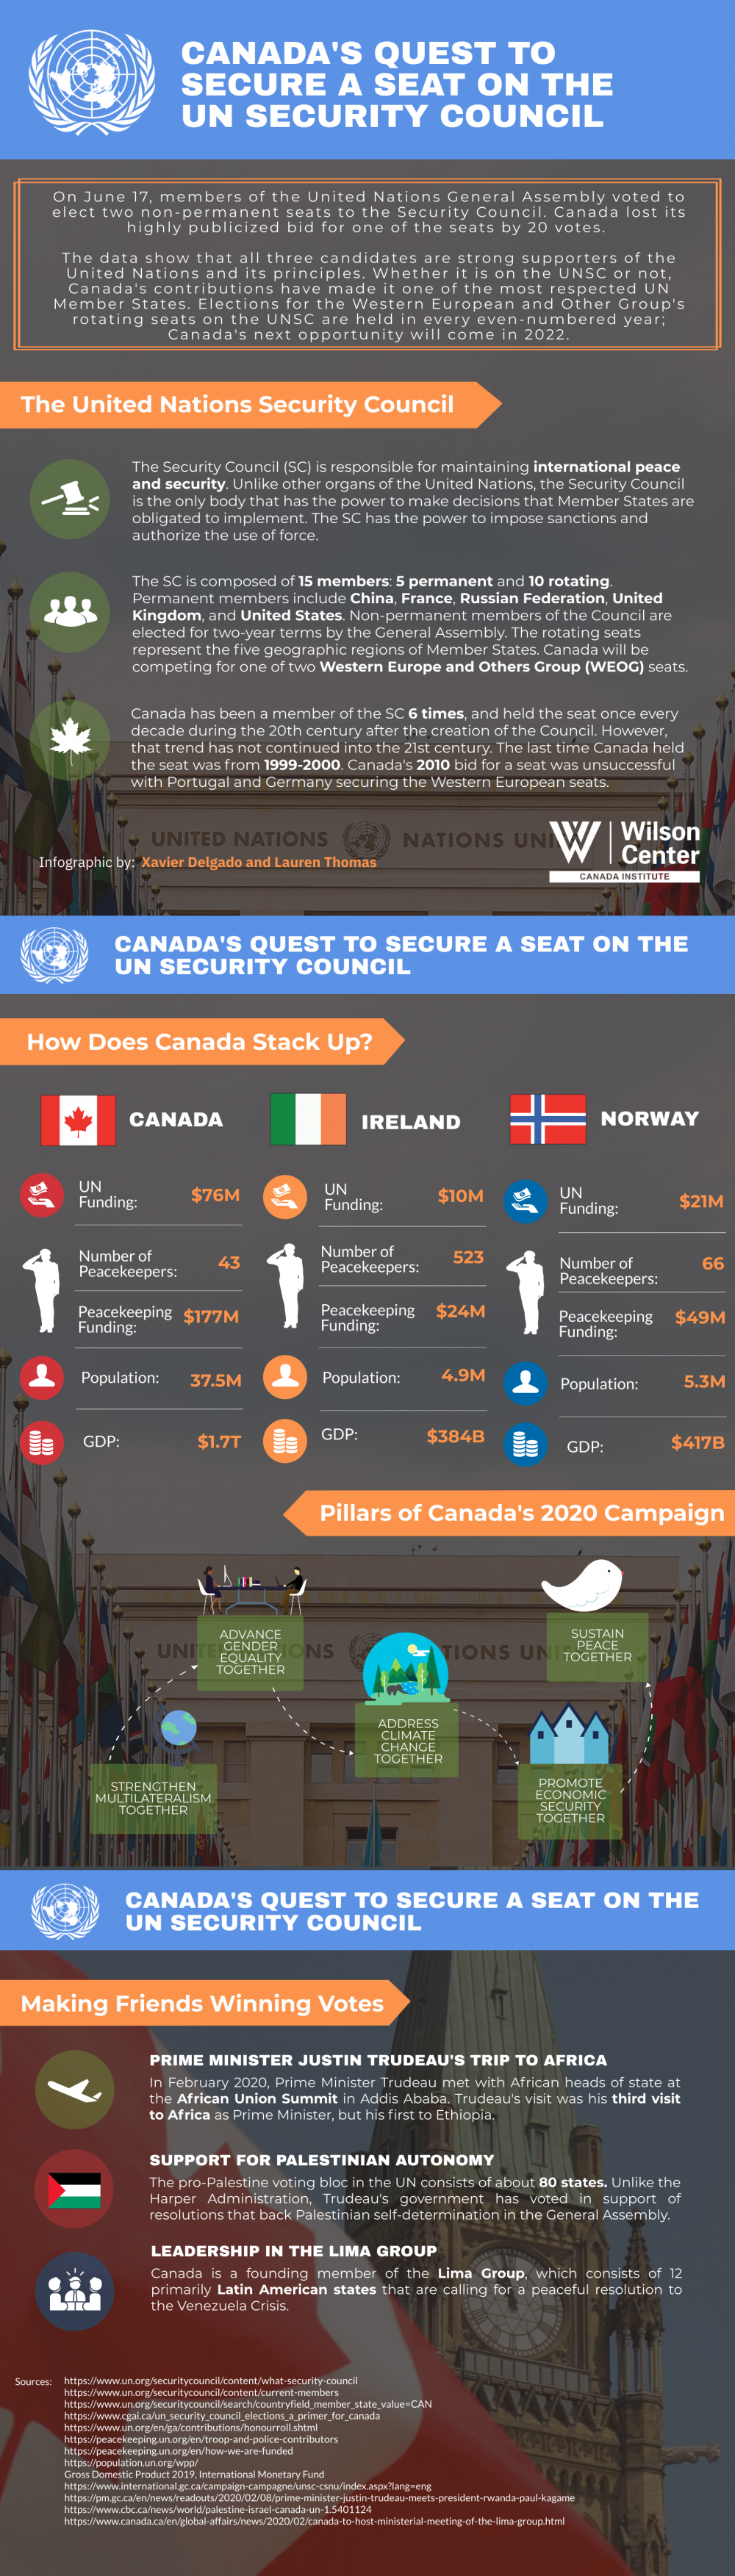 Infographic | Canada's Quest To Secure a Seat on the UN Security Council